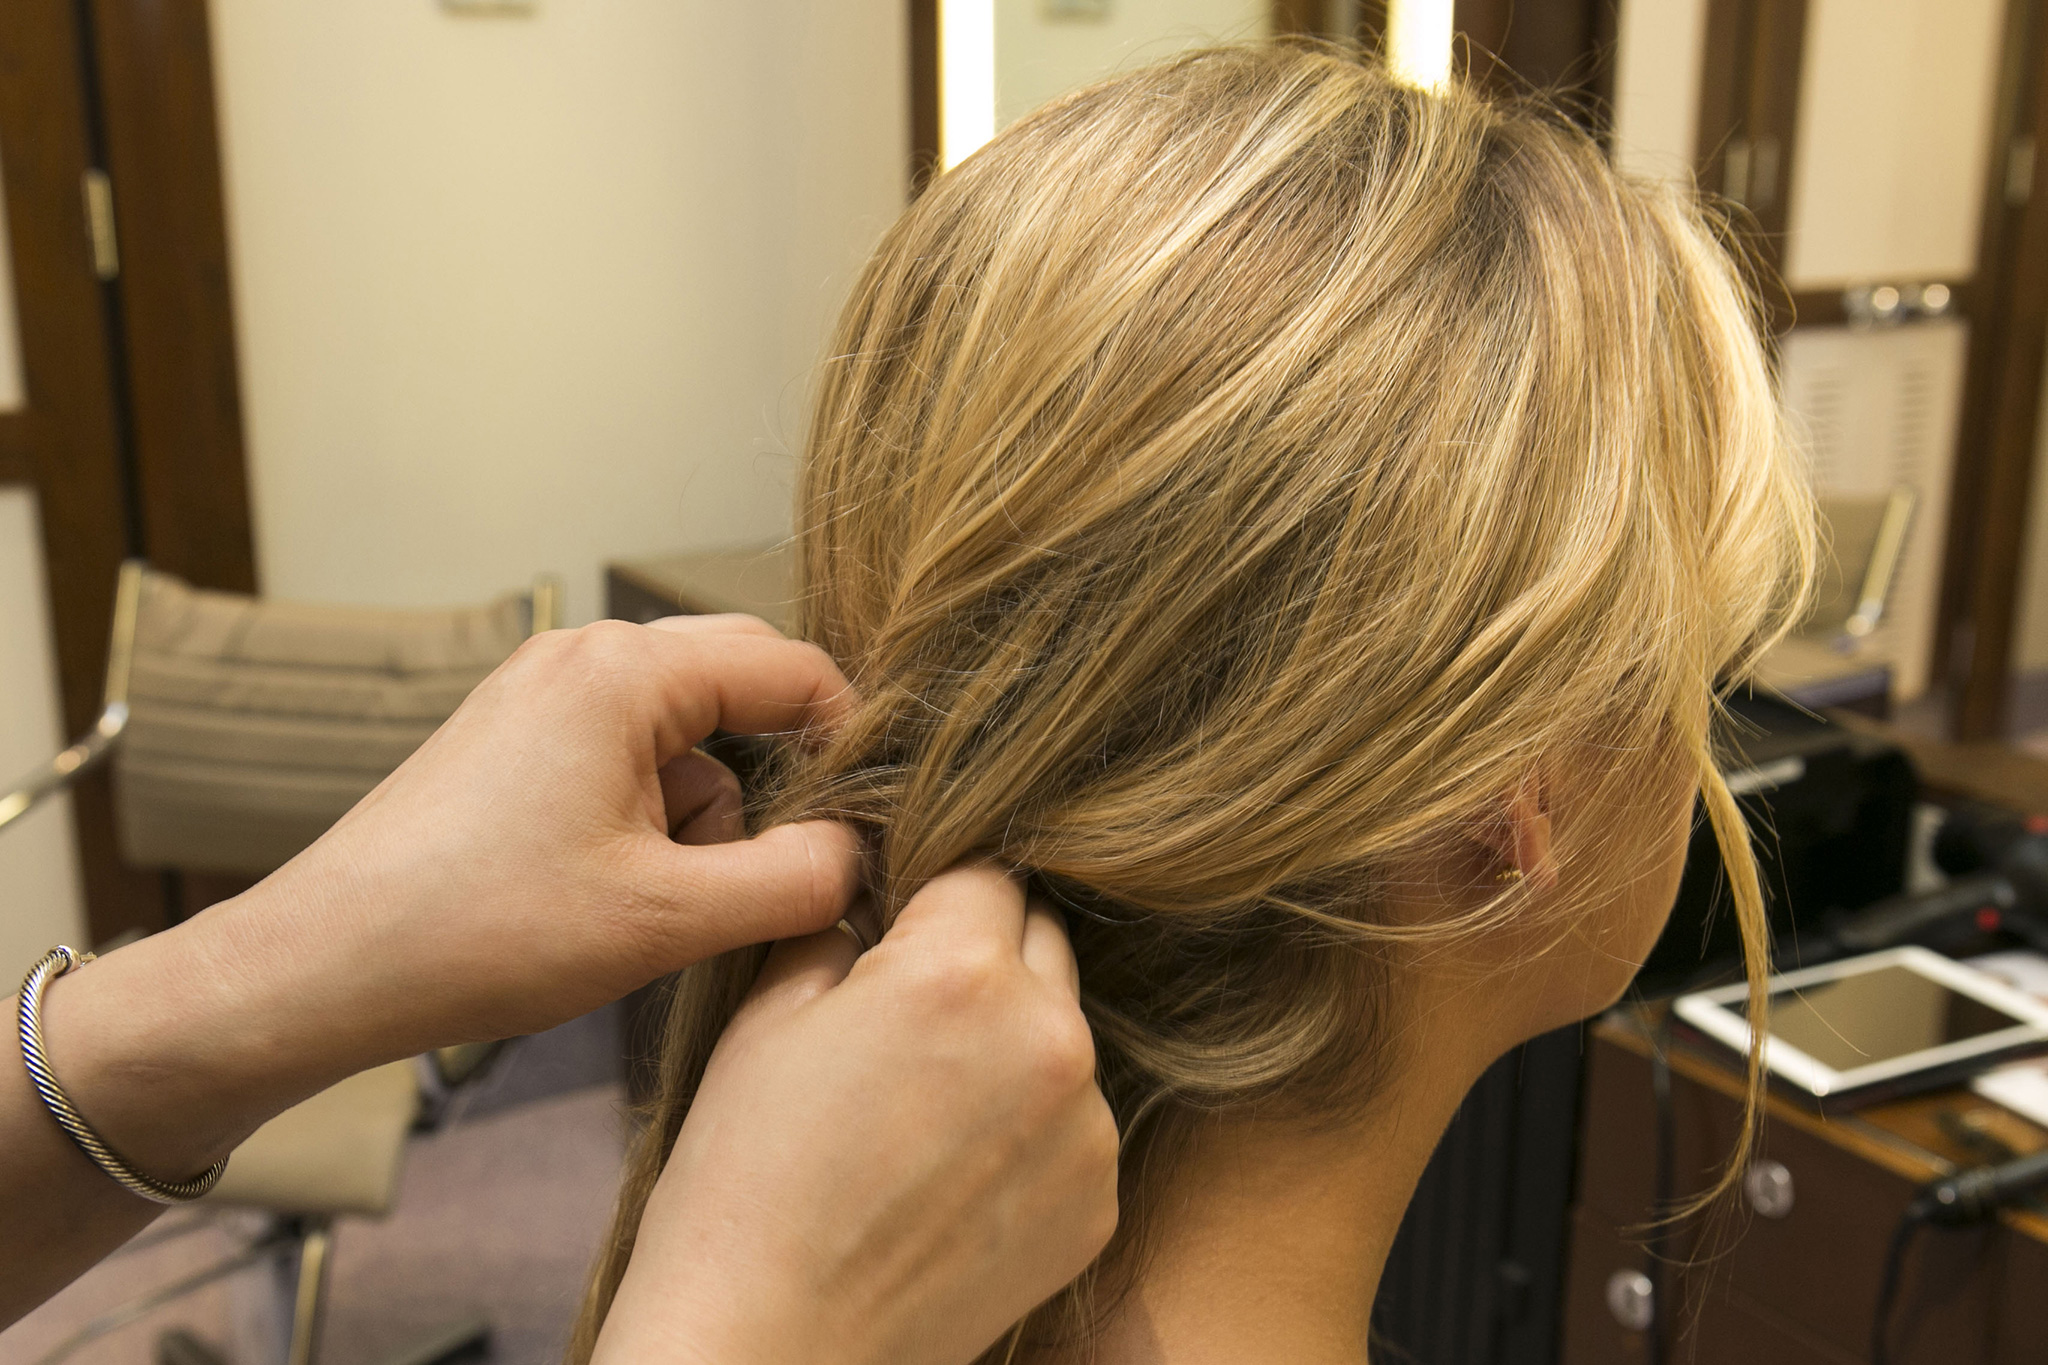 Next, the advanced DIY braider can create a loose french braid starting behind the opposing ear to help hold the sideswept hair in place. For beginners, try a regular braid or just twist hair over to help keep it in place.